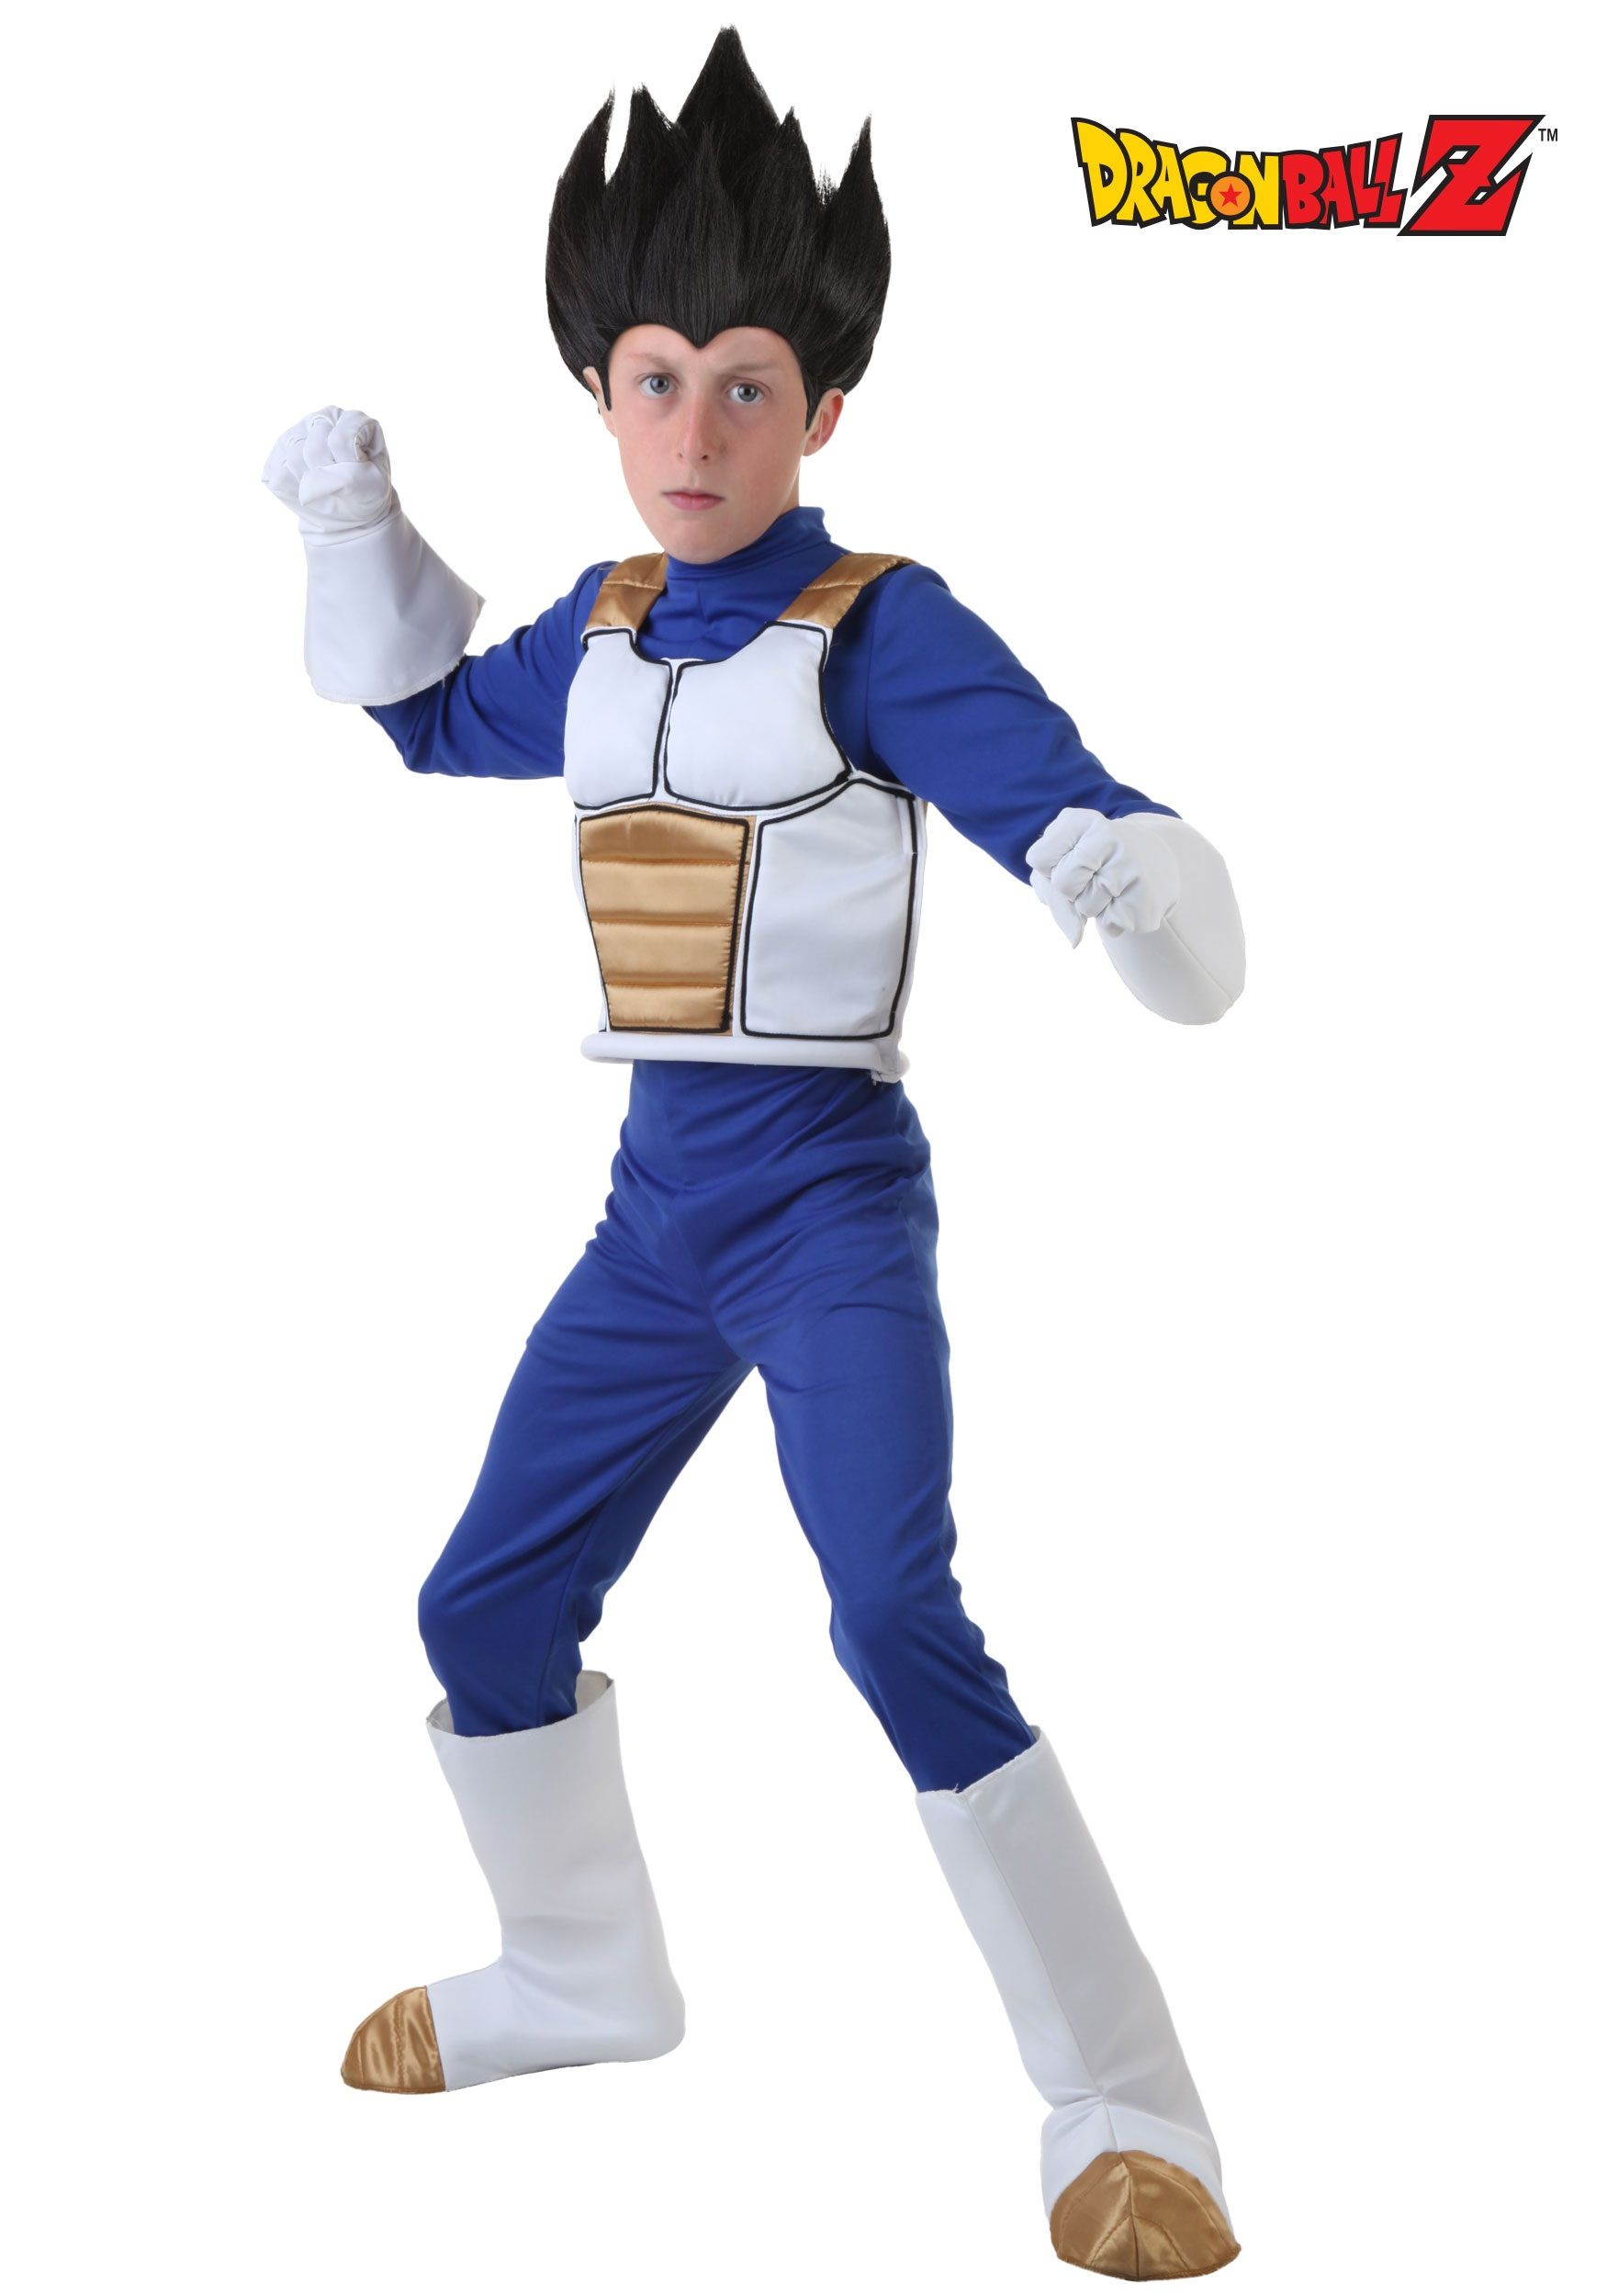 Dragon Ball Z Child Vegeta Costume | Costumes, Boy halloween ...